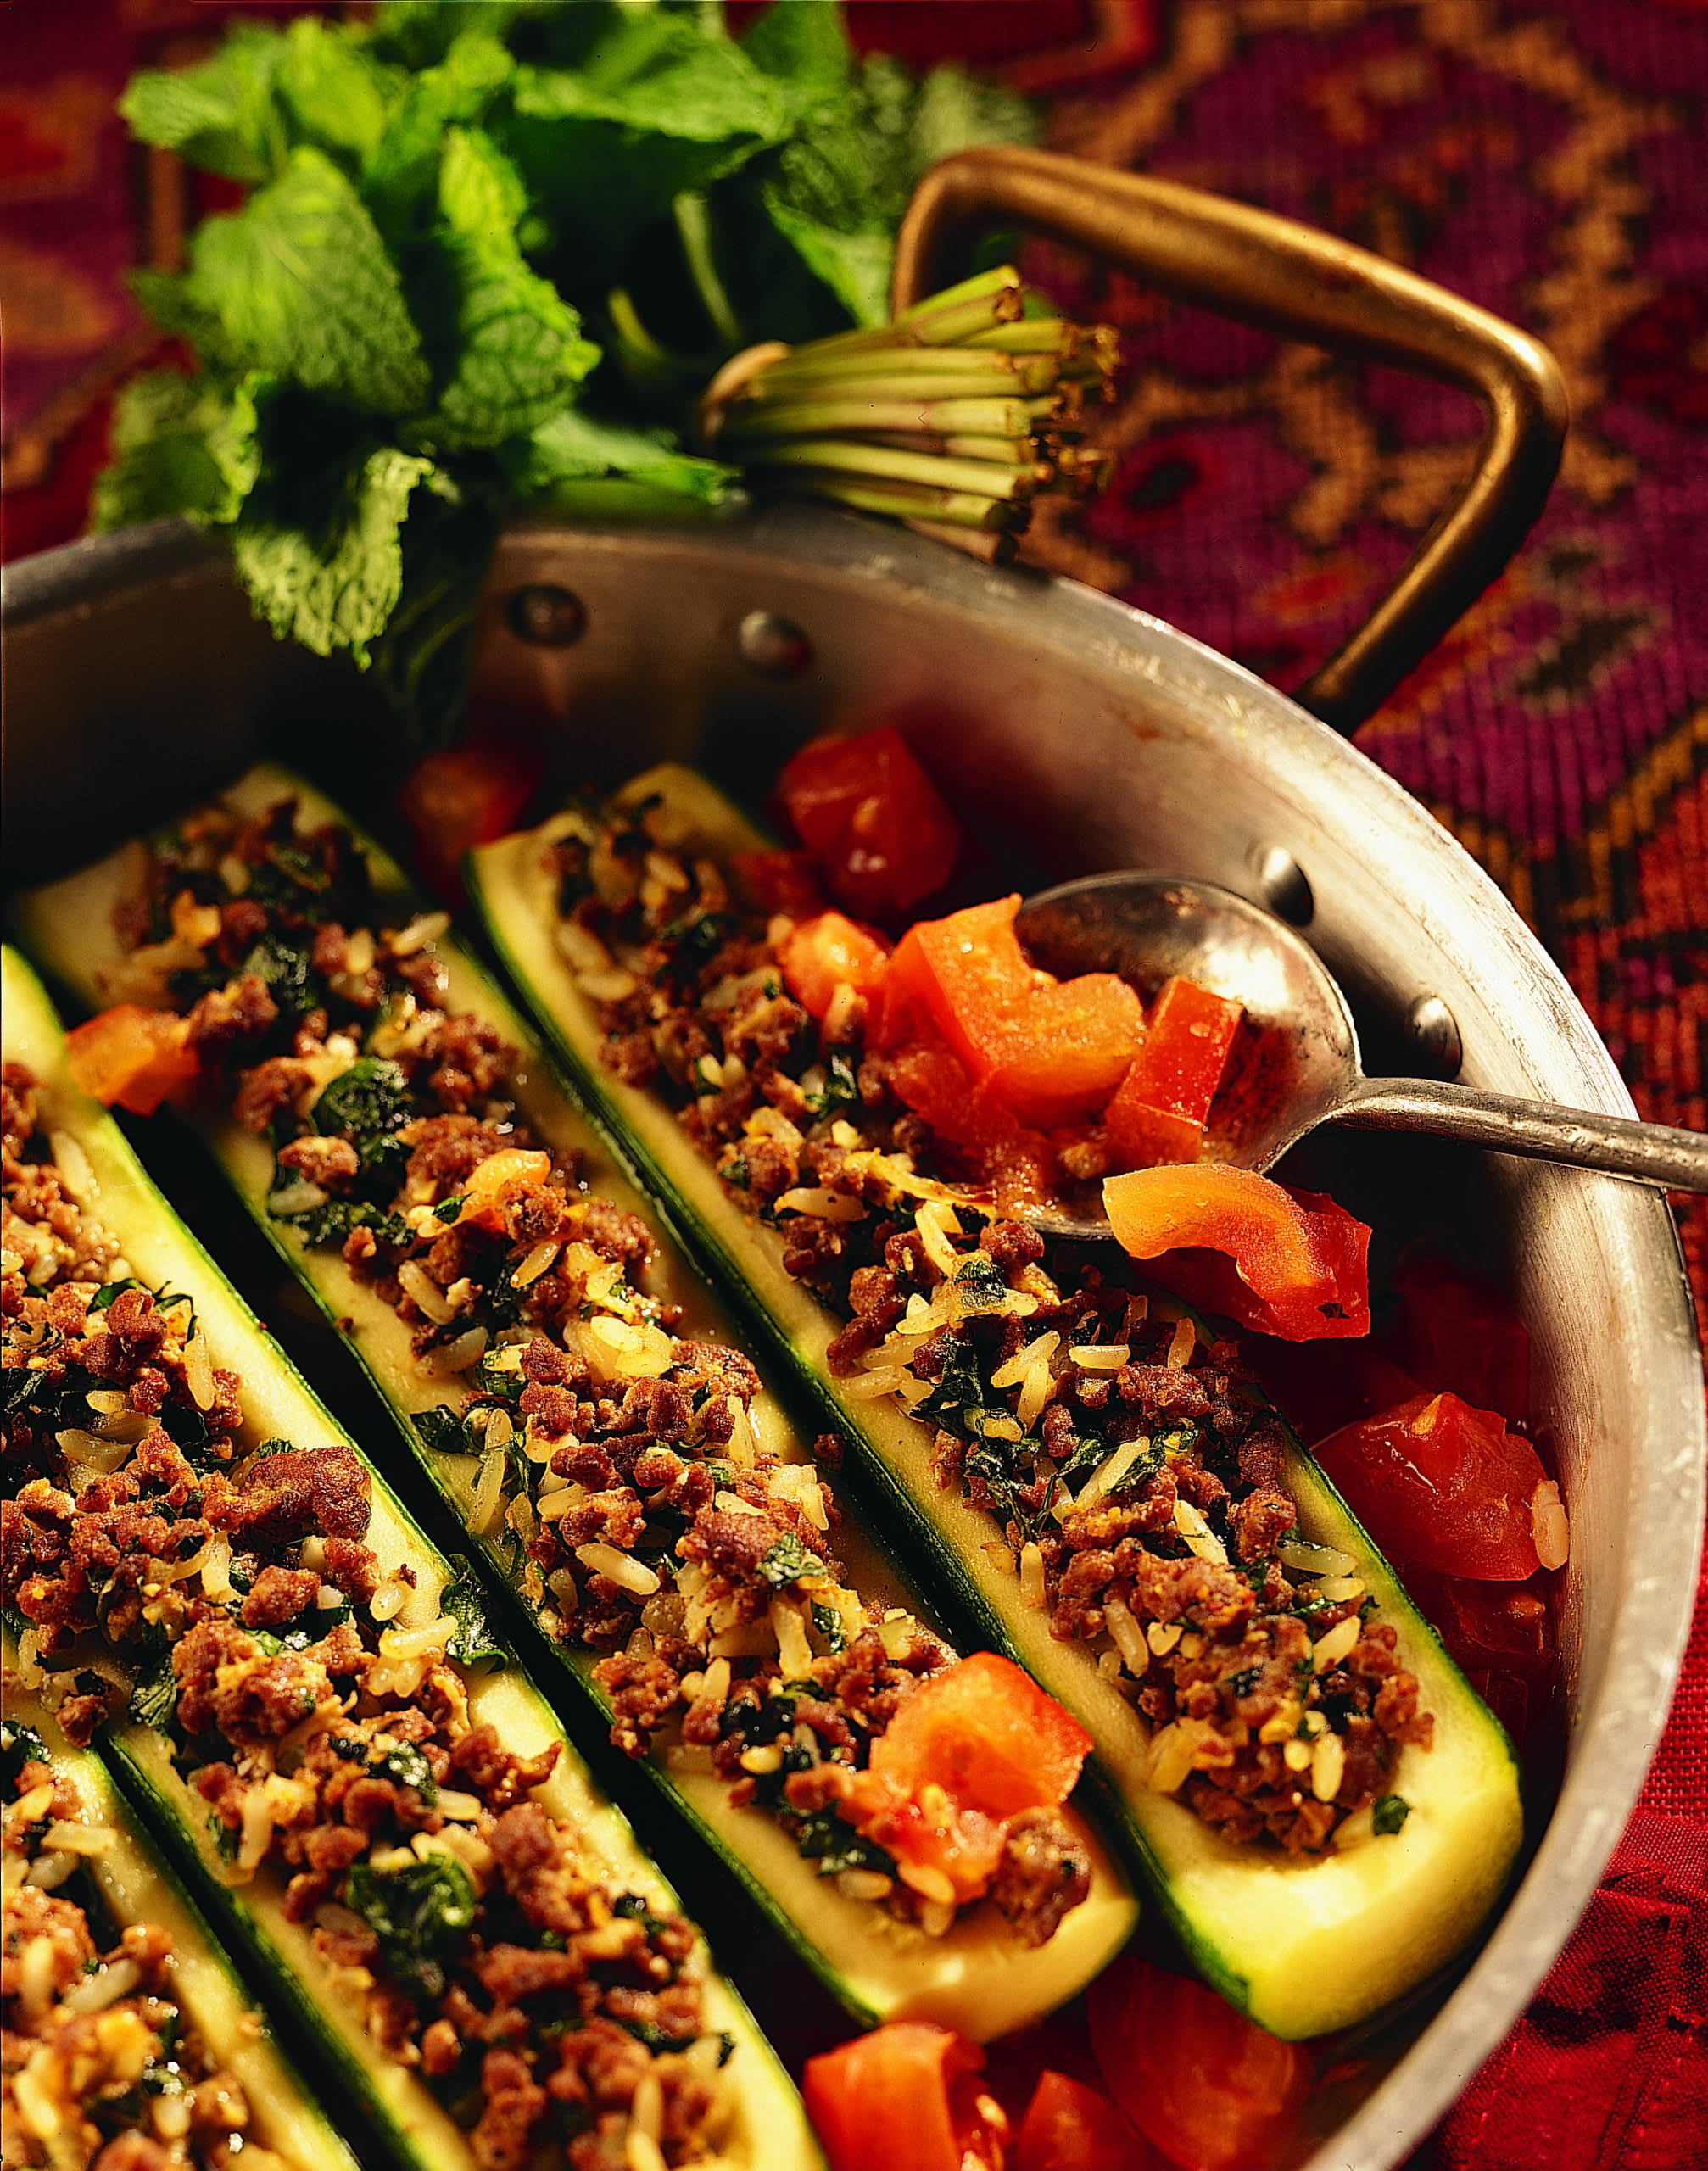 Dulma (courgettes farcies)